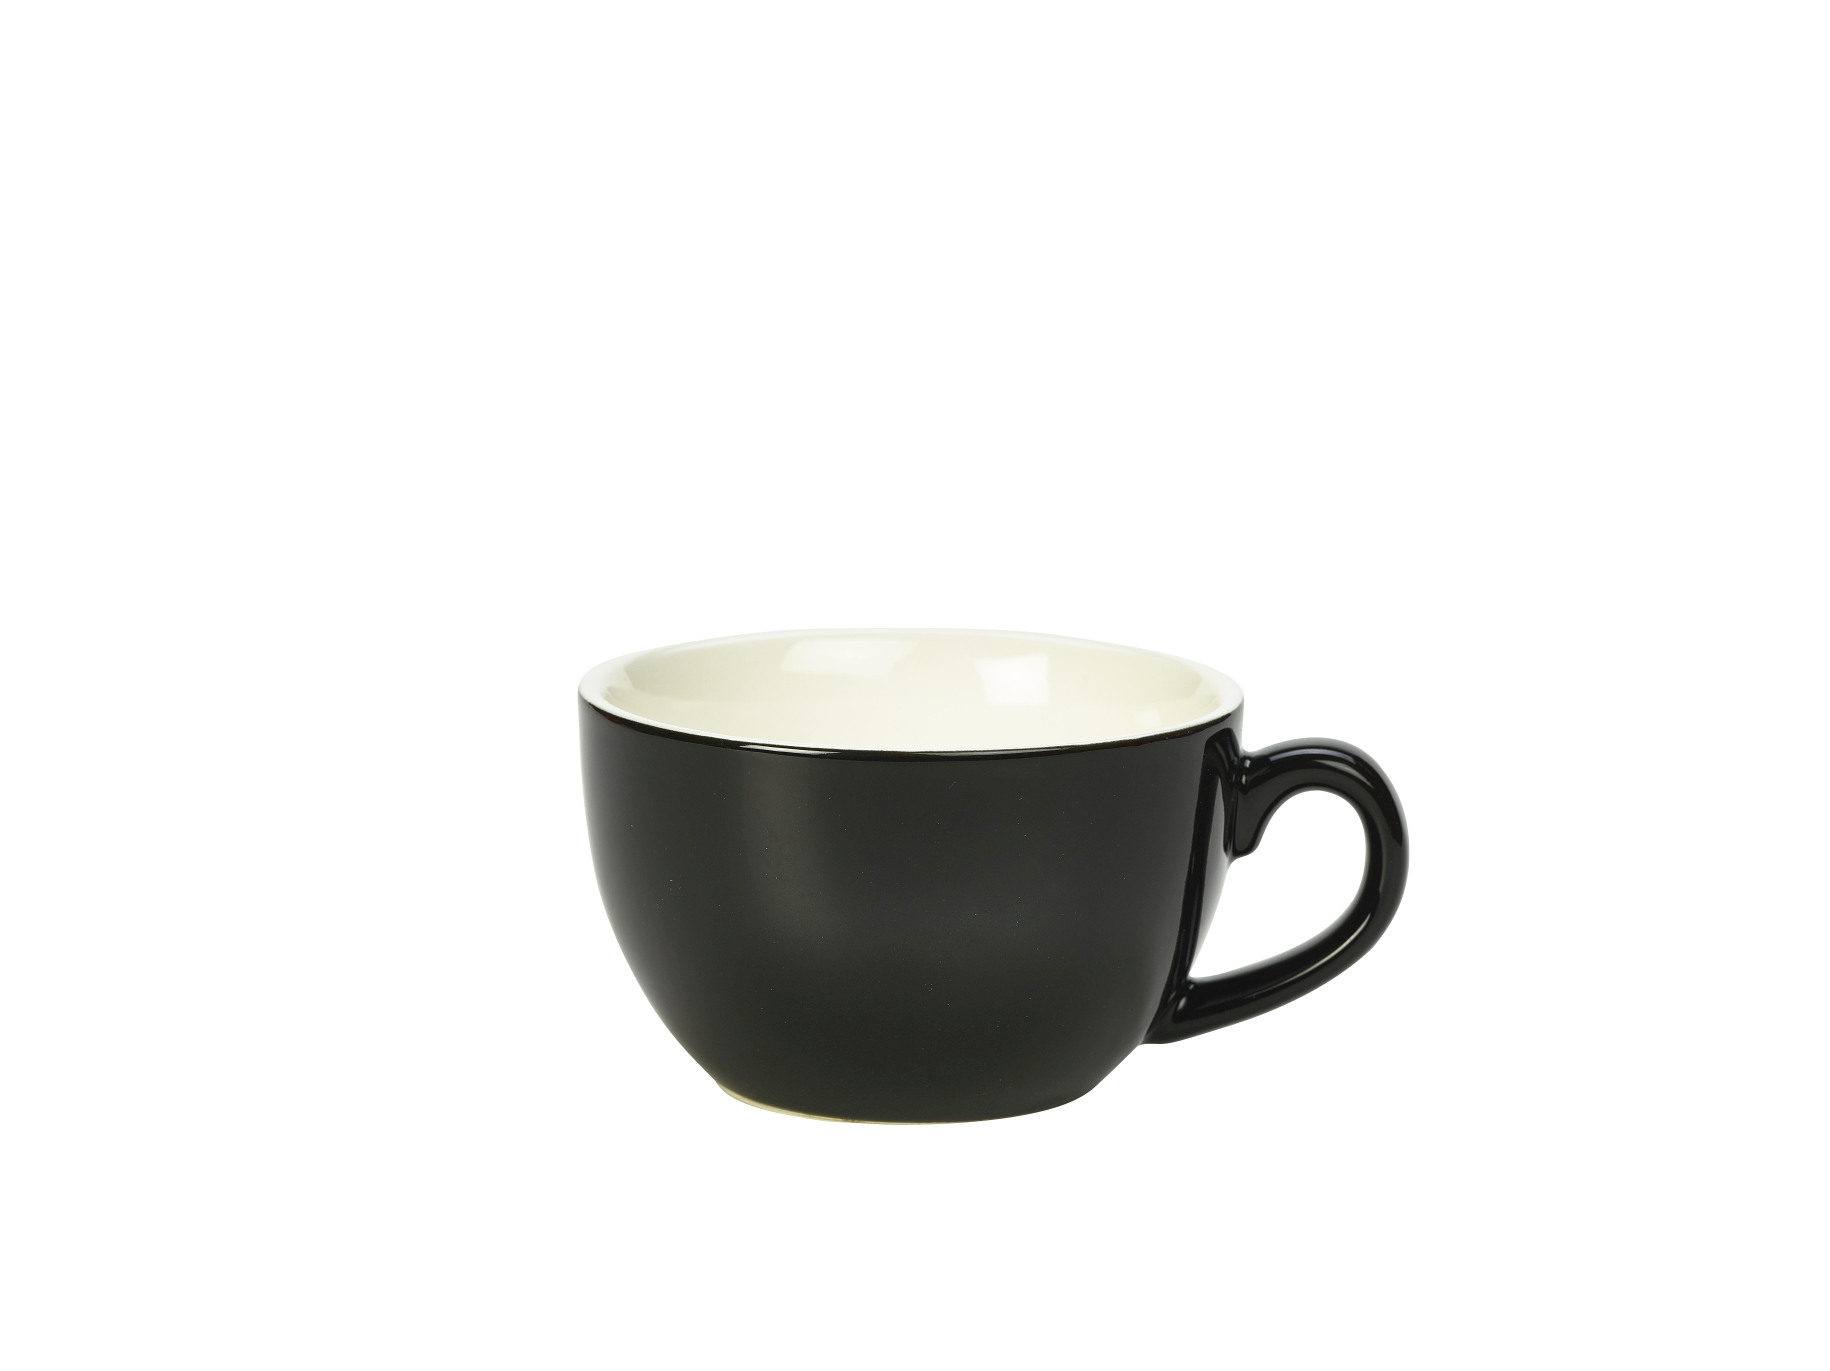 Genware Porcelain Bowl Shaped Cup 25cl Black